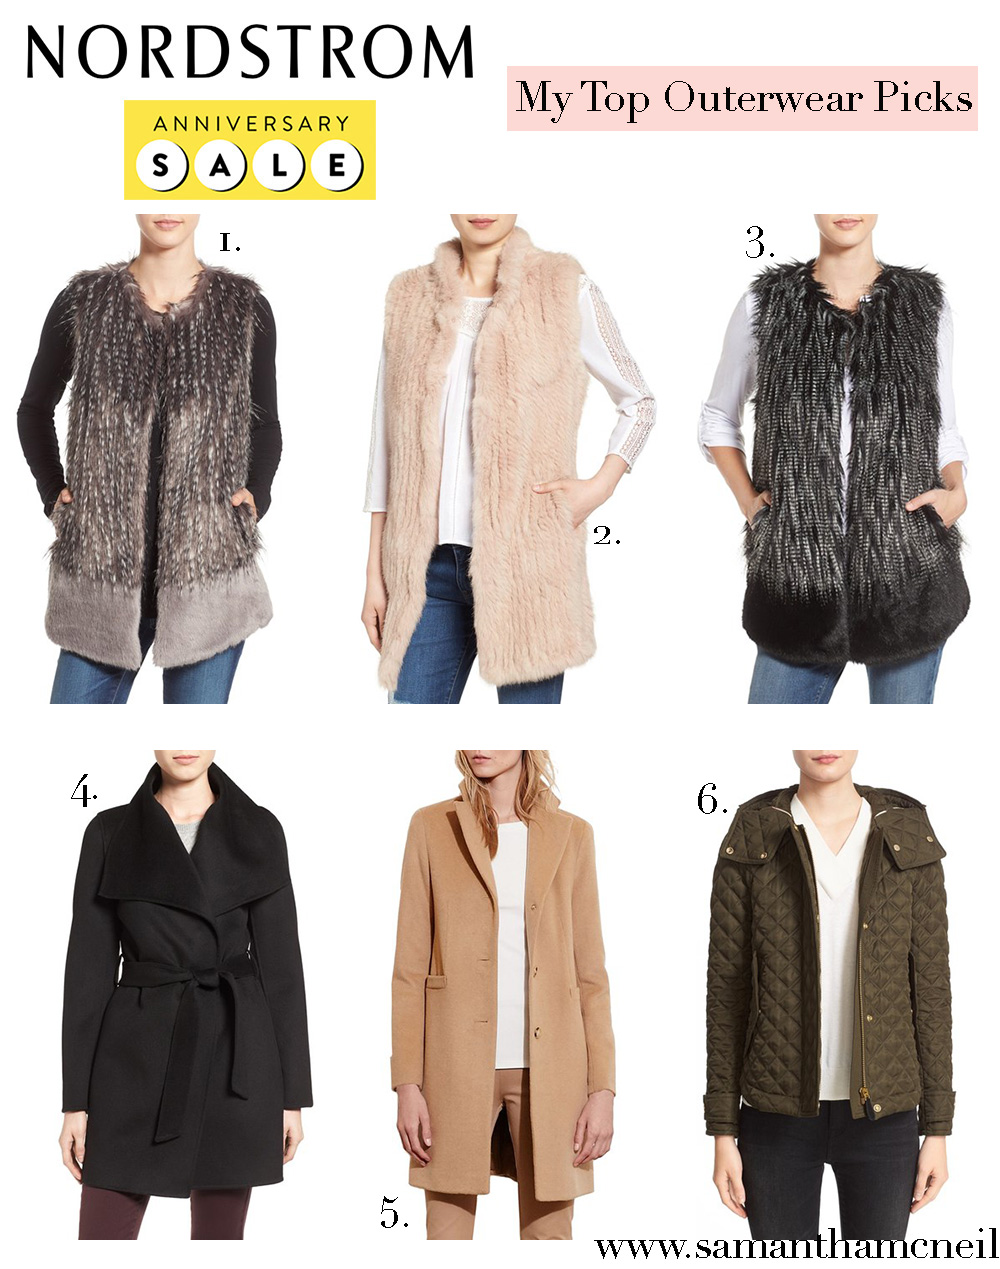 Nordstrom-Anniversary-Sale-My-Top-Outerwear-Picks